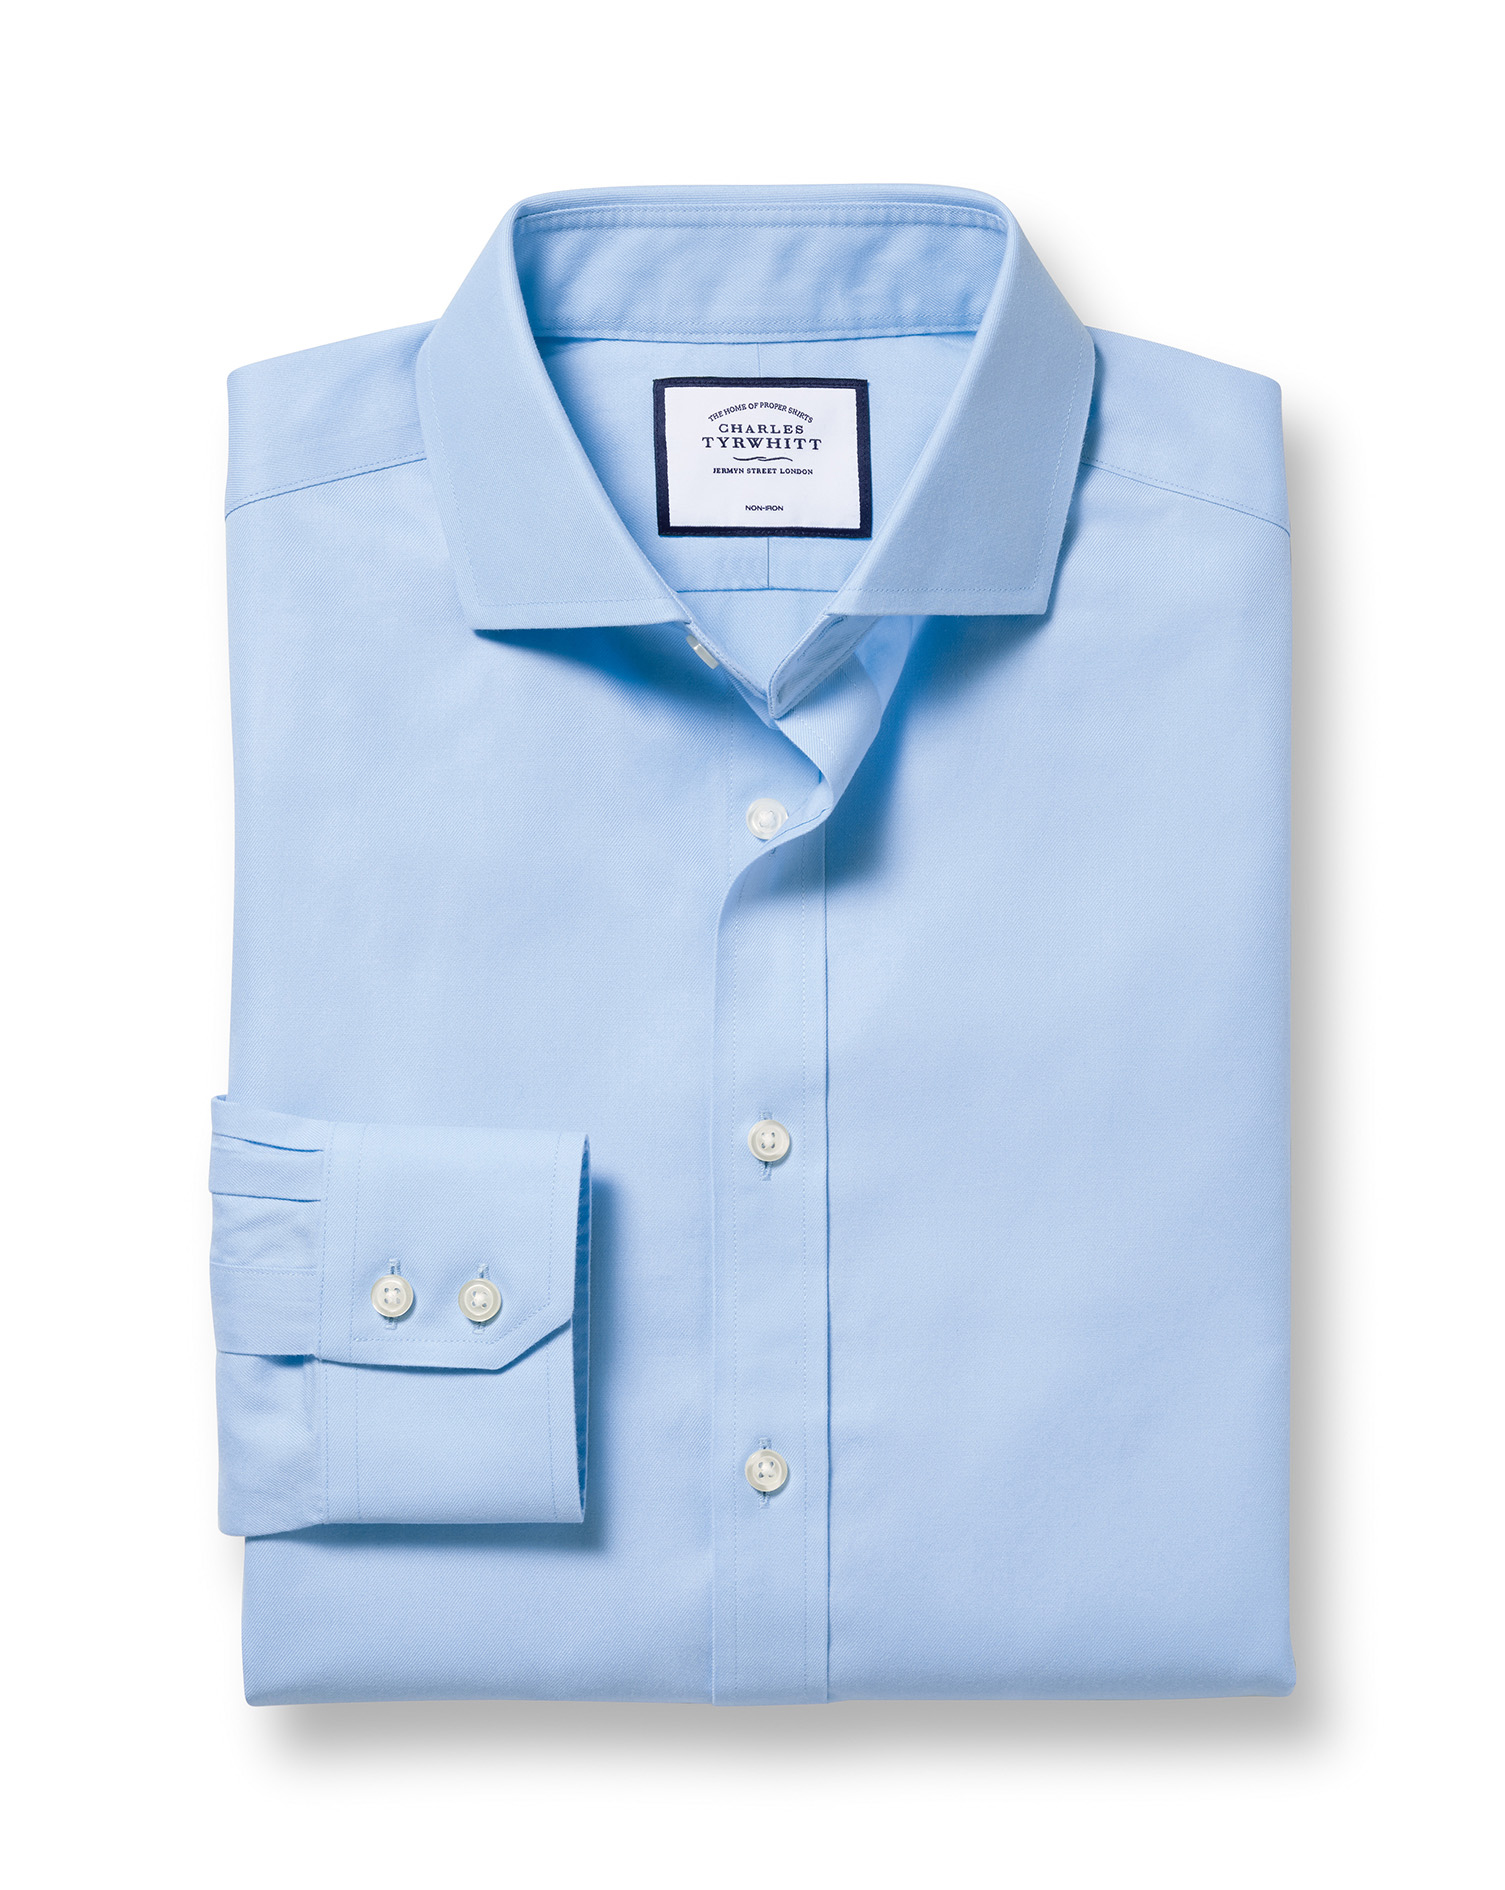 Slim Fit Sky Blue Non-Iron Twill Cutaway Collar Cotton Formal Shirt Single Cuff Size 15.5/34 by Char